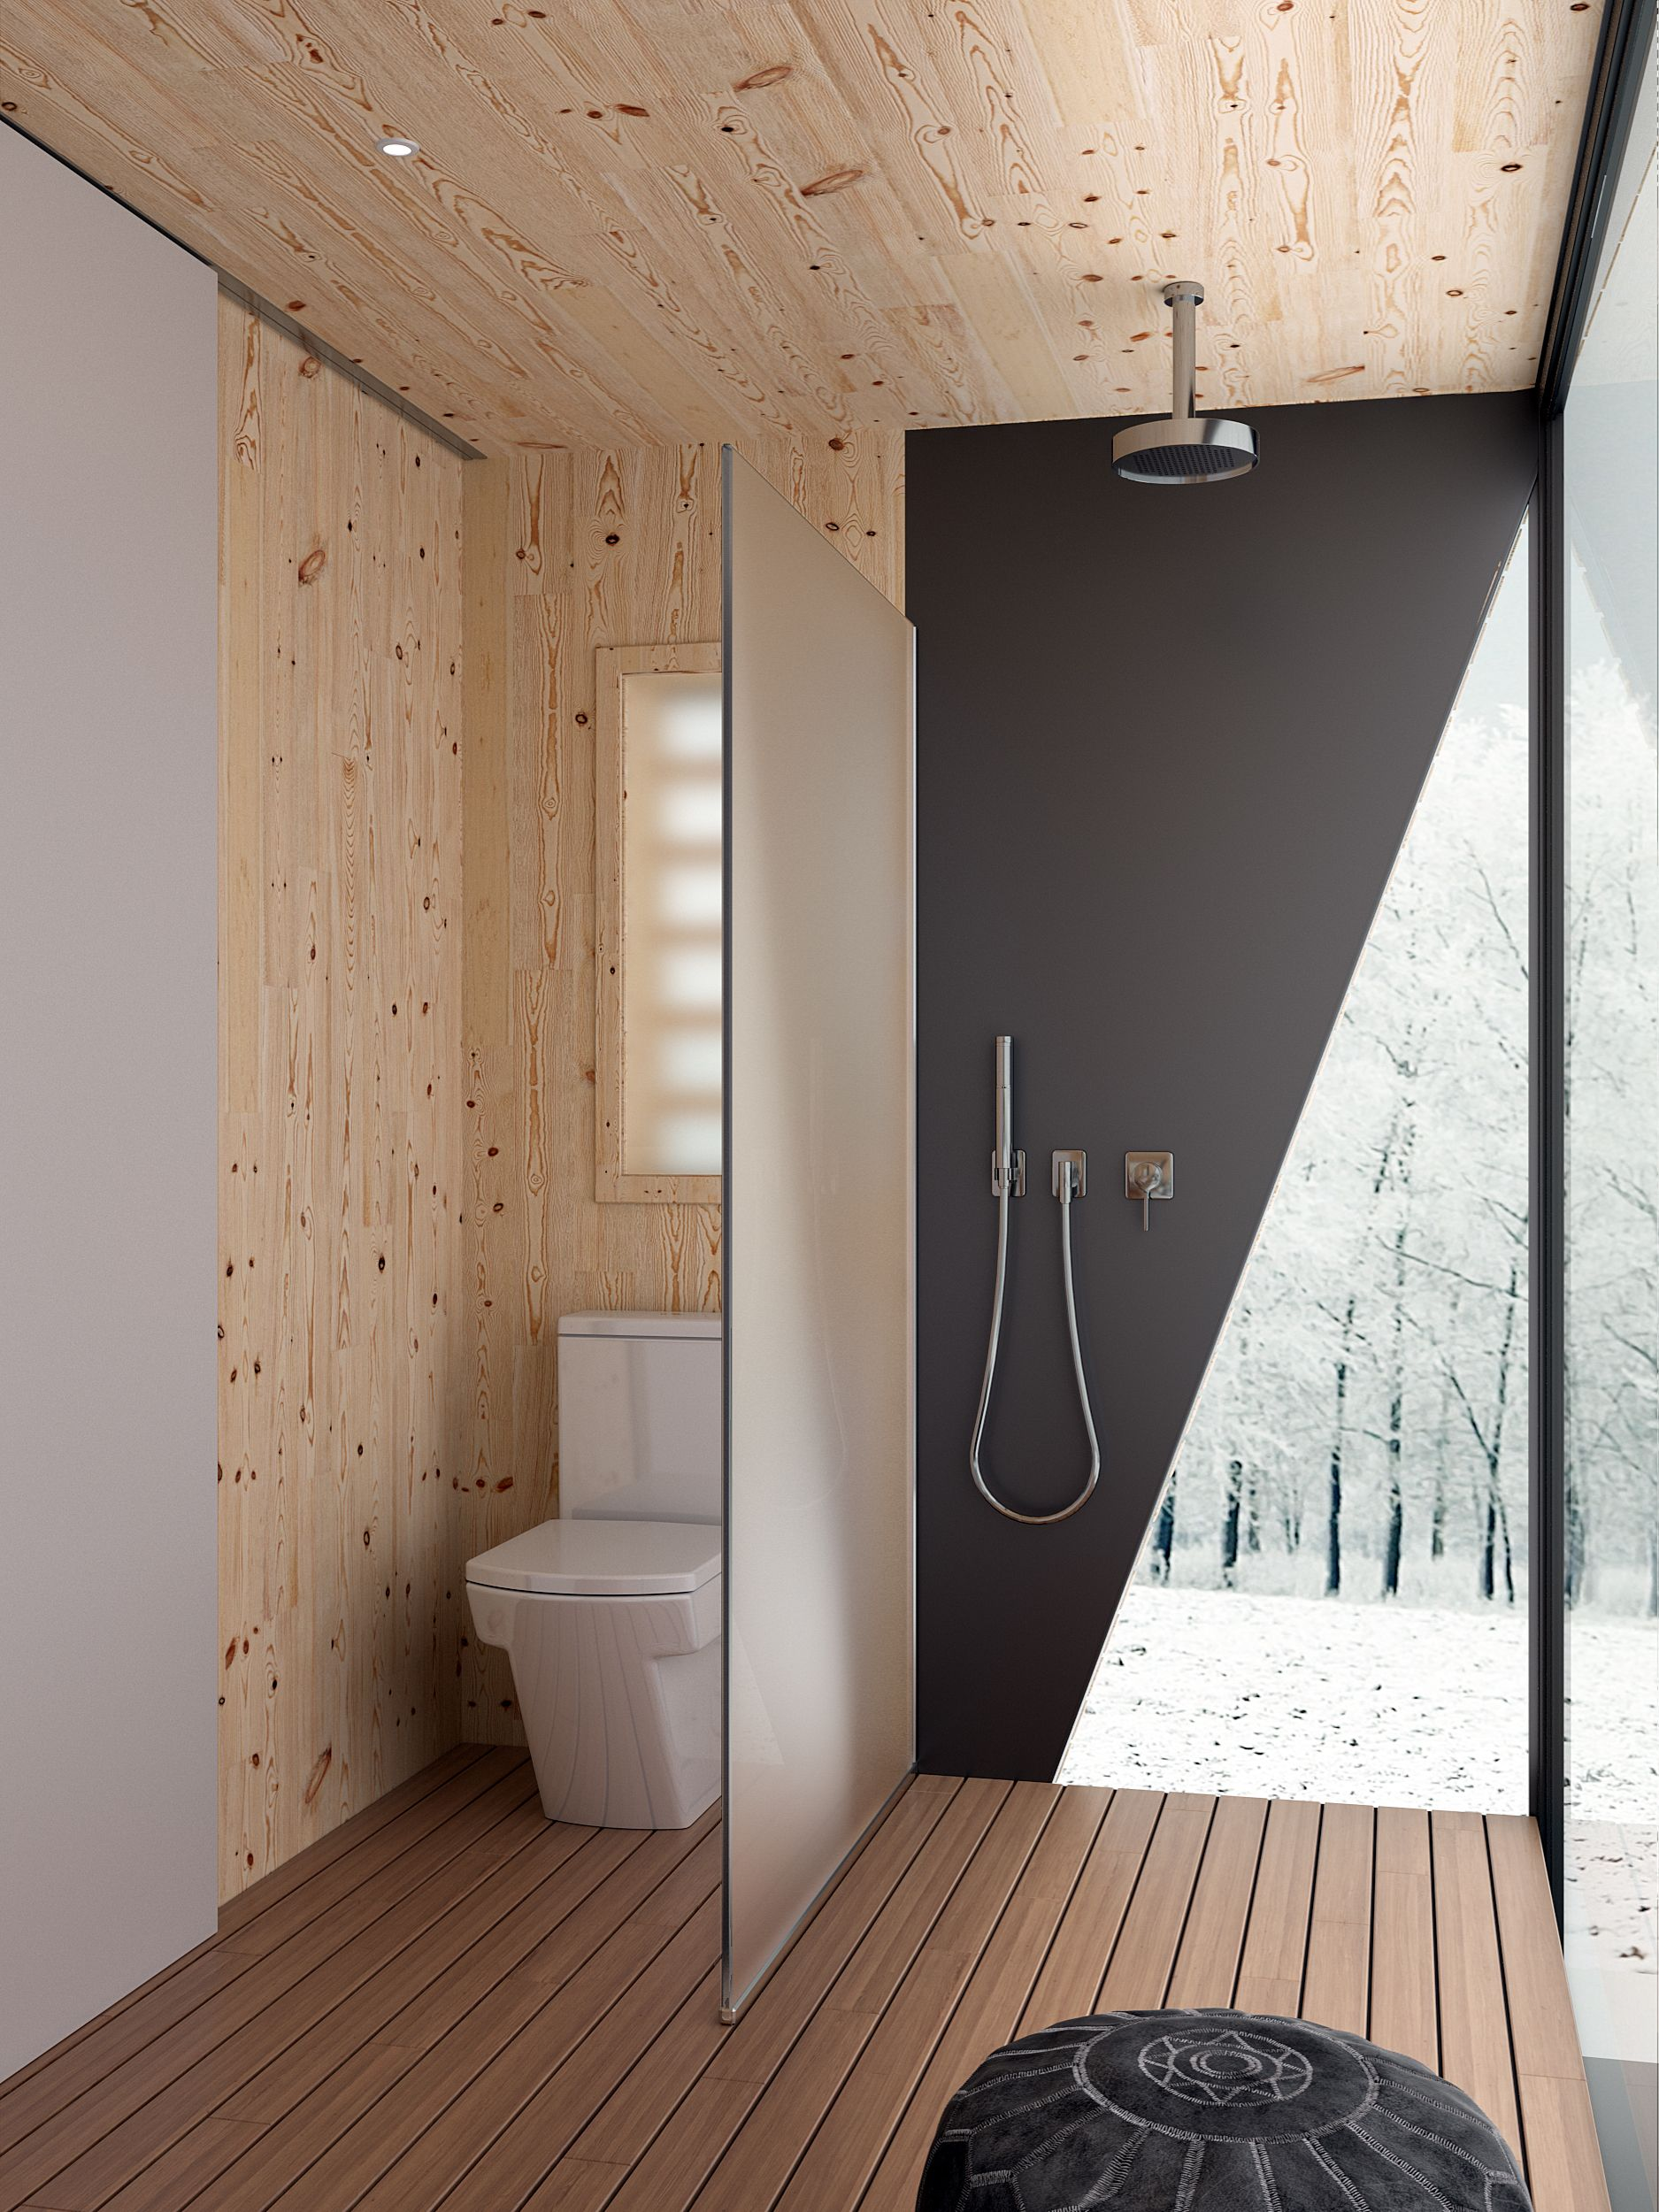 Hotel Room Photography: Best Photos From This Modular Eco-Hotel Room Is Poised To